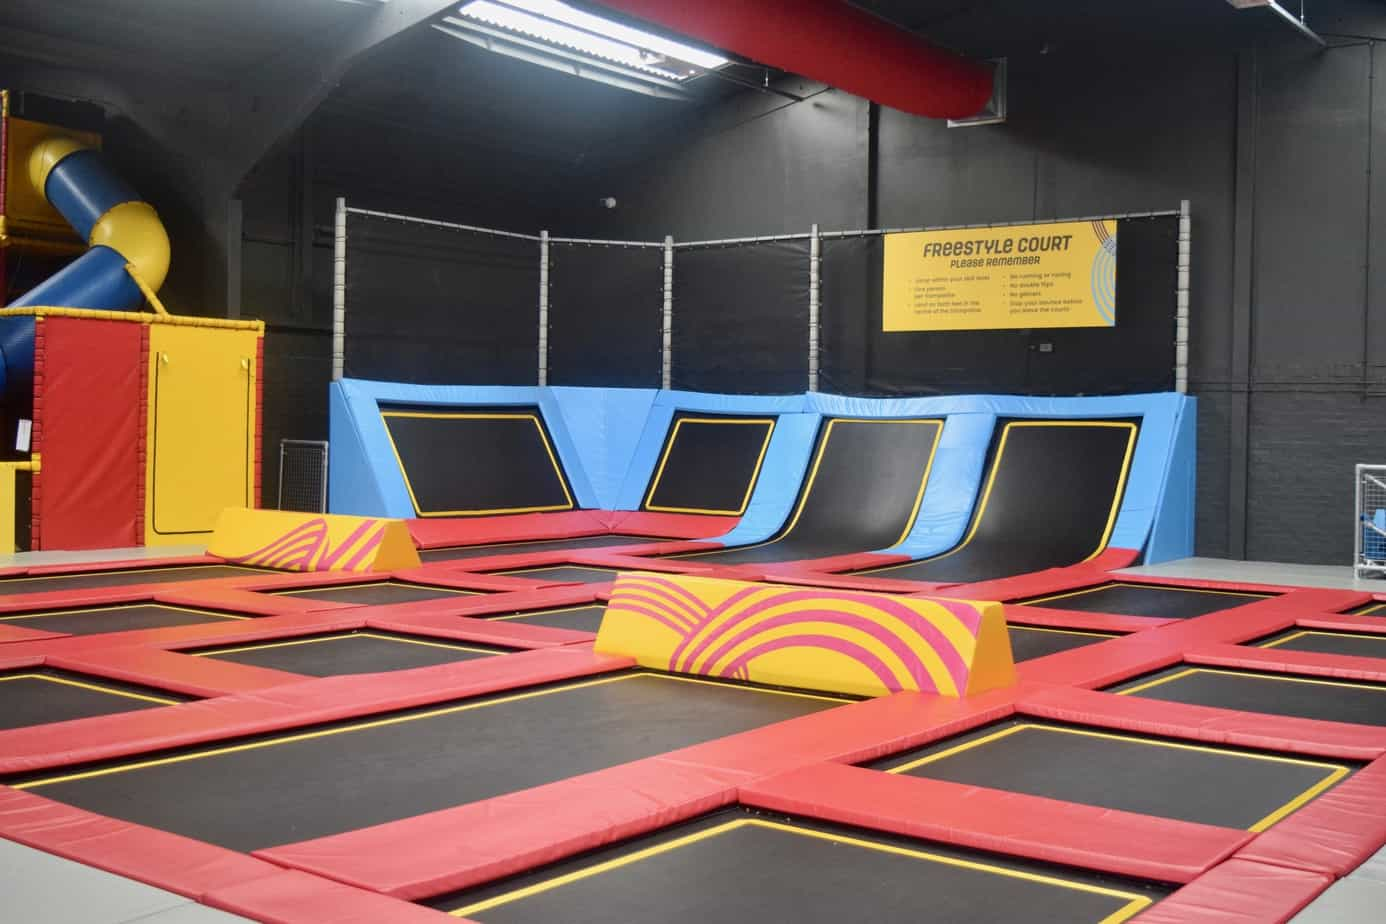 Some of the bounce area at Red Kangaroo